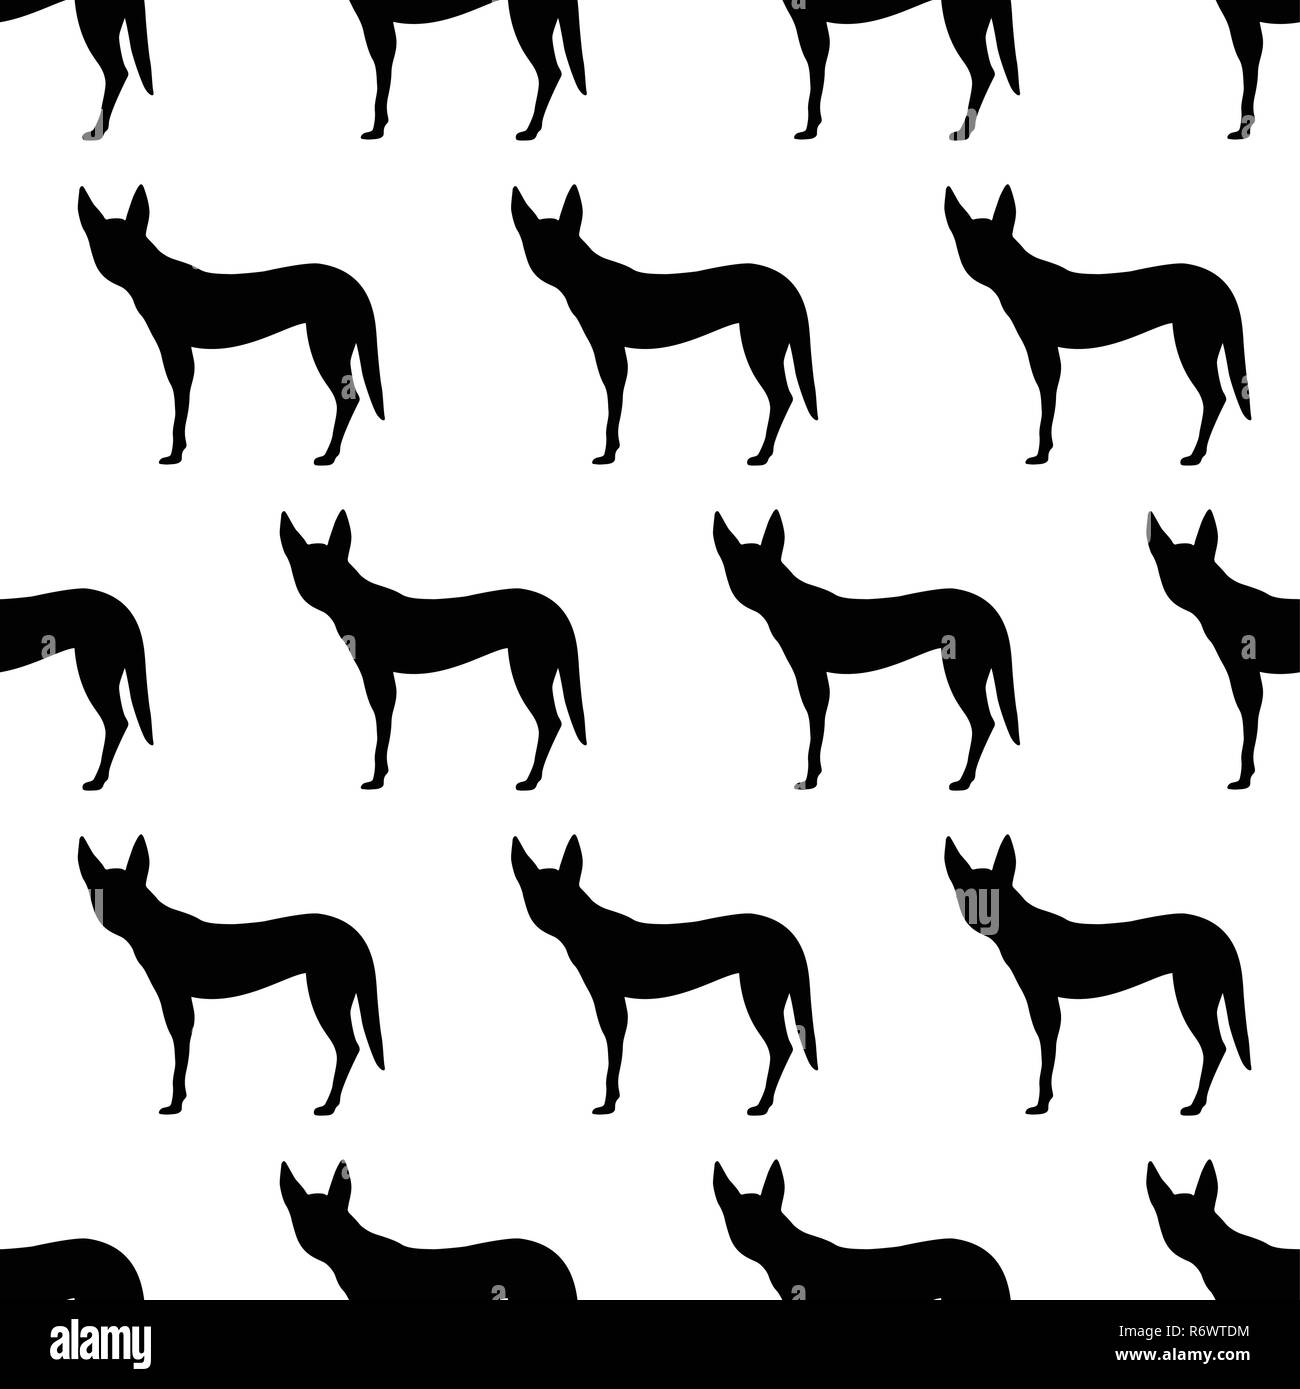 Seamless pattern with silhouettes of Dingo dog. Australian animal. Isolated on white background. Black silhouettes. Hand drawn. Vector illustration. - Stock Image